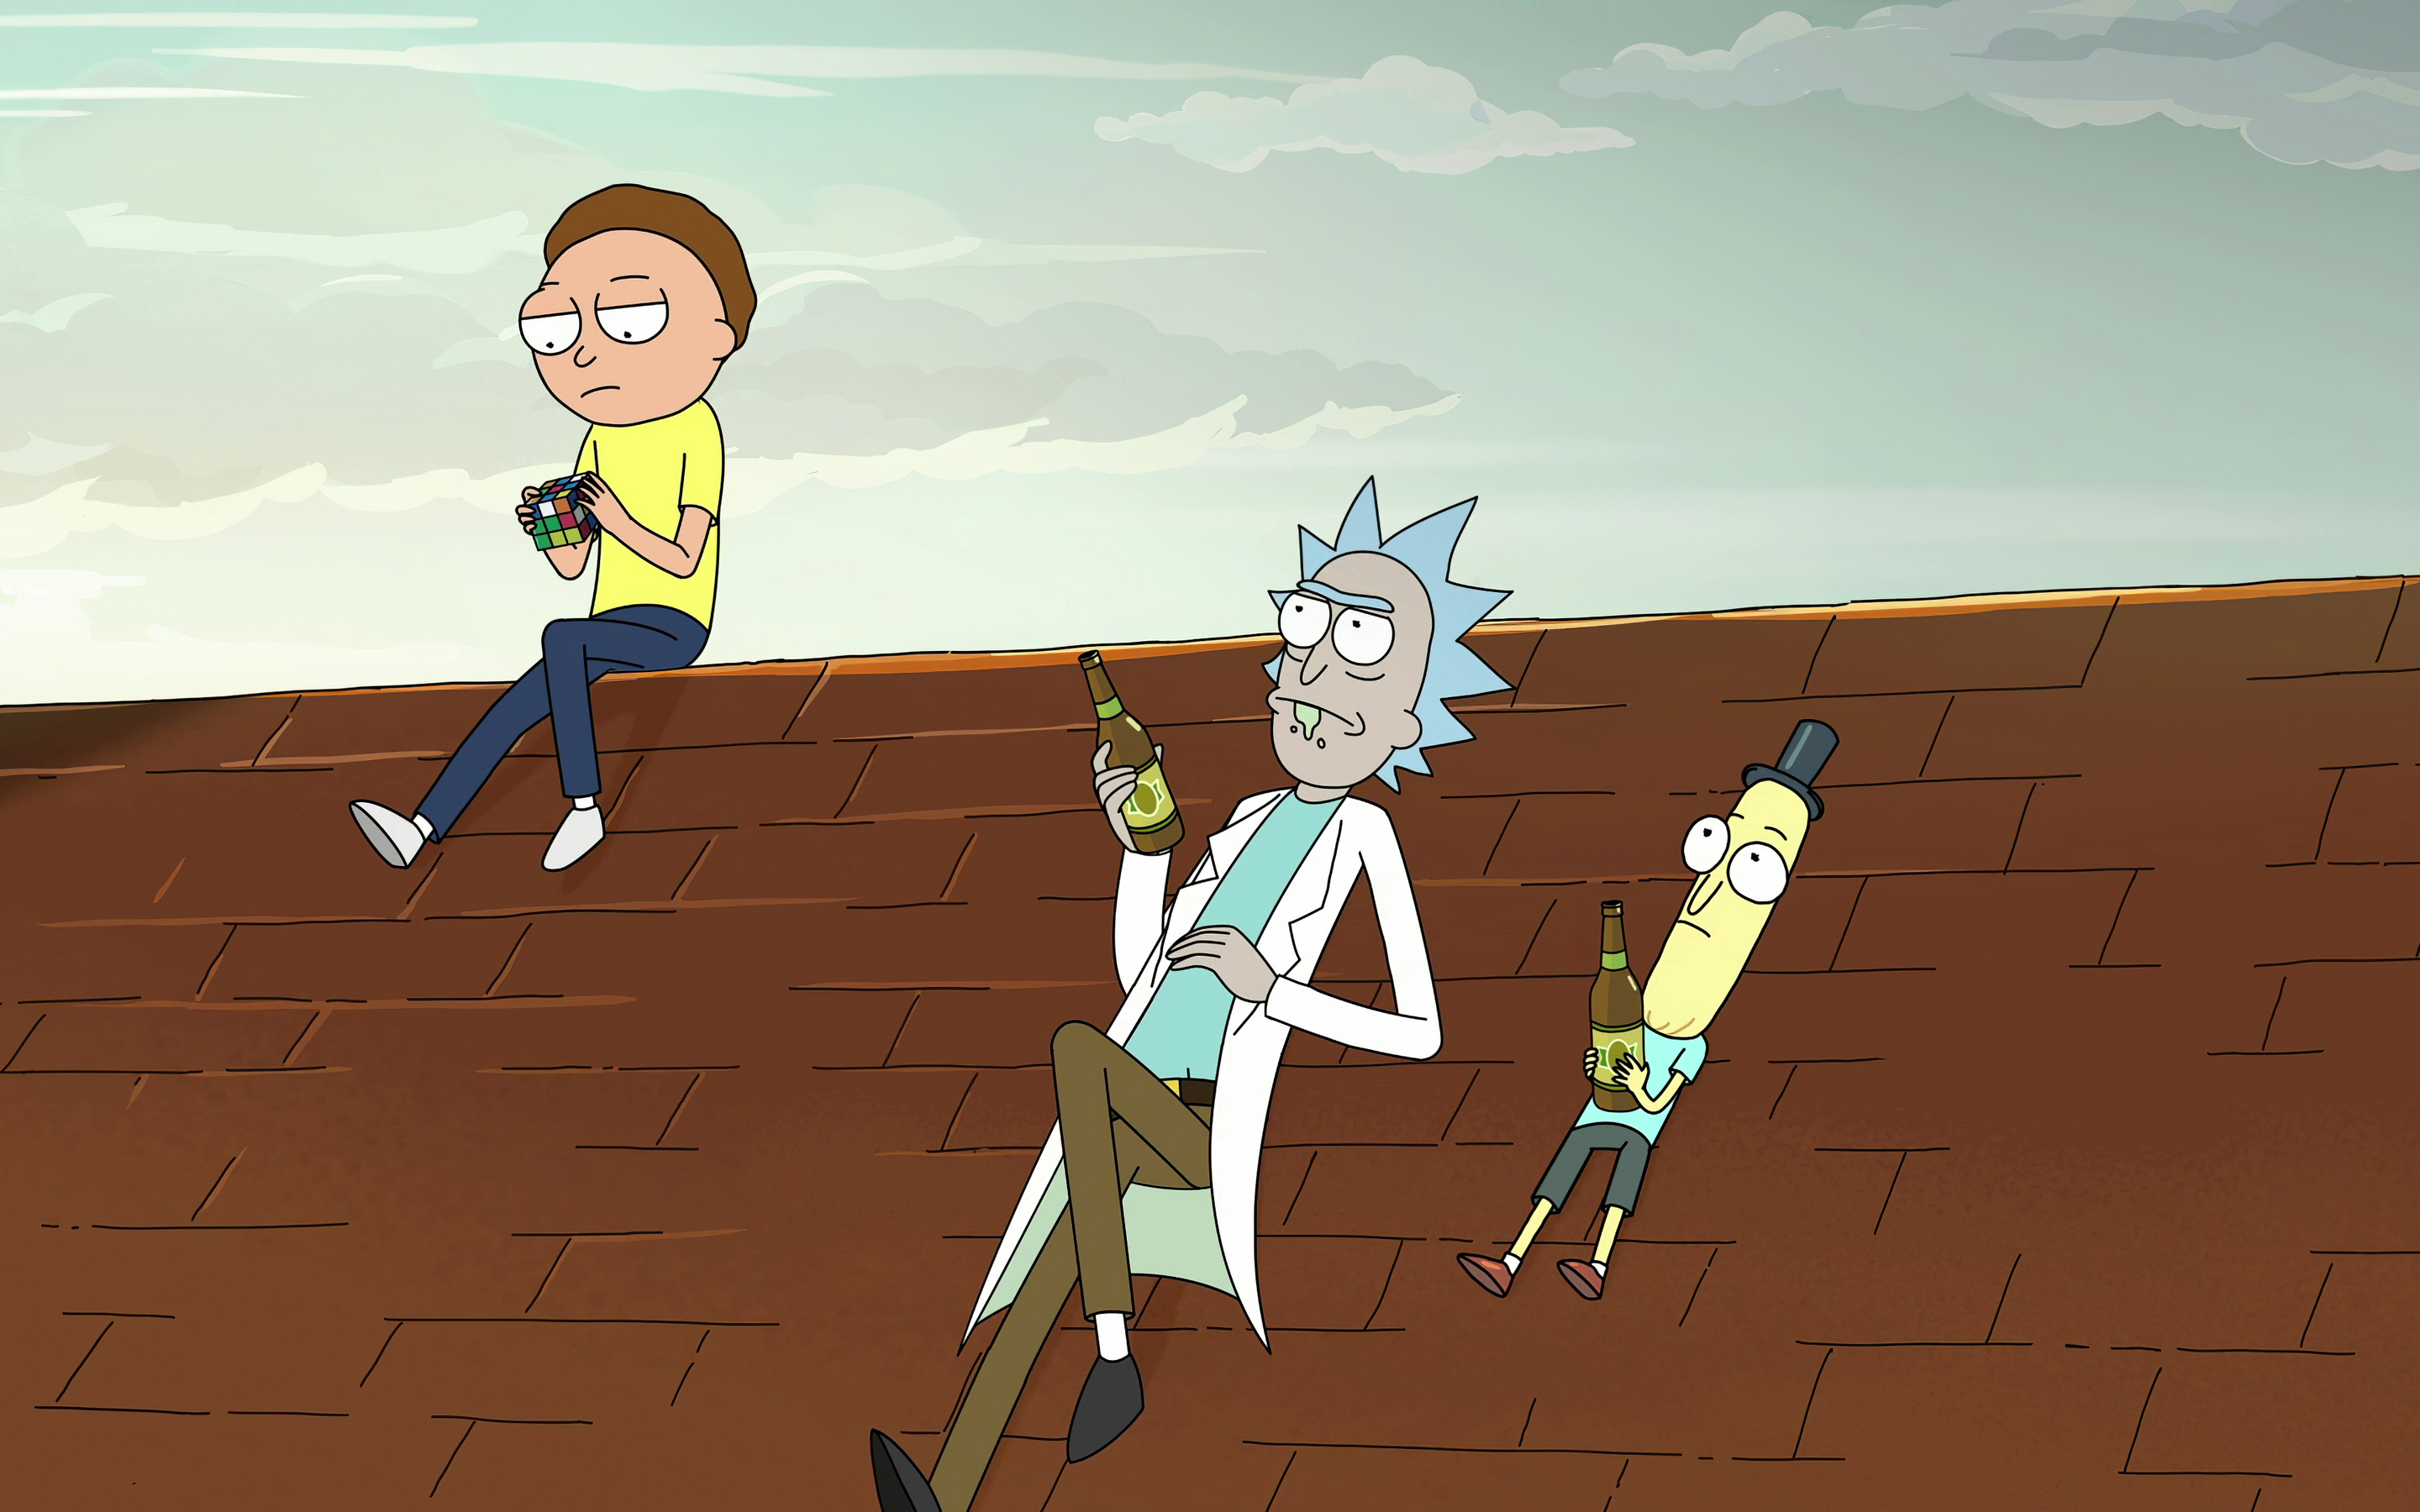 rick-morty-and-mr-poopybutthole-4k-bm.jpg